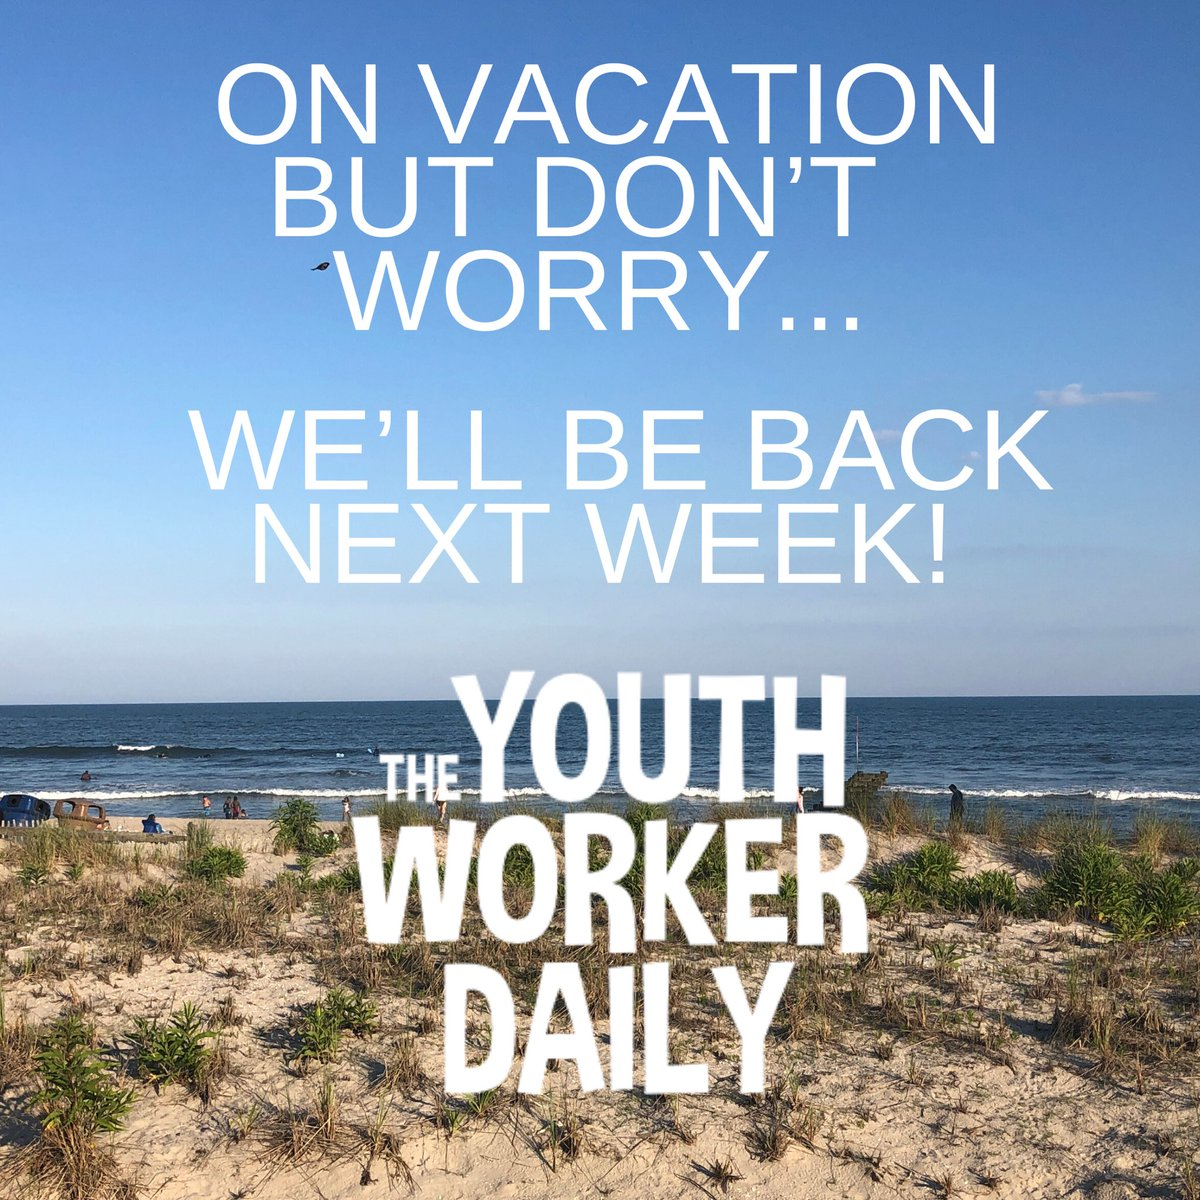 Sorry for the abrupt halt on the podcast and website. We are on a quick vacation. But don't worry we will return next week!! #ythworkerdaily #conversationspodcast #stumin #youthministry #podcastpic.twitter.com/Qvh6LSCAuJ